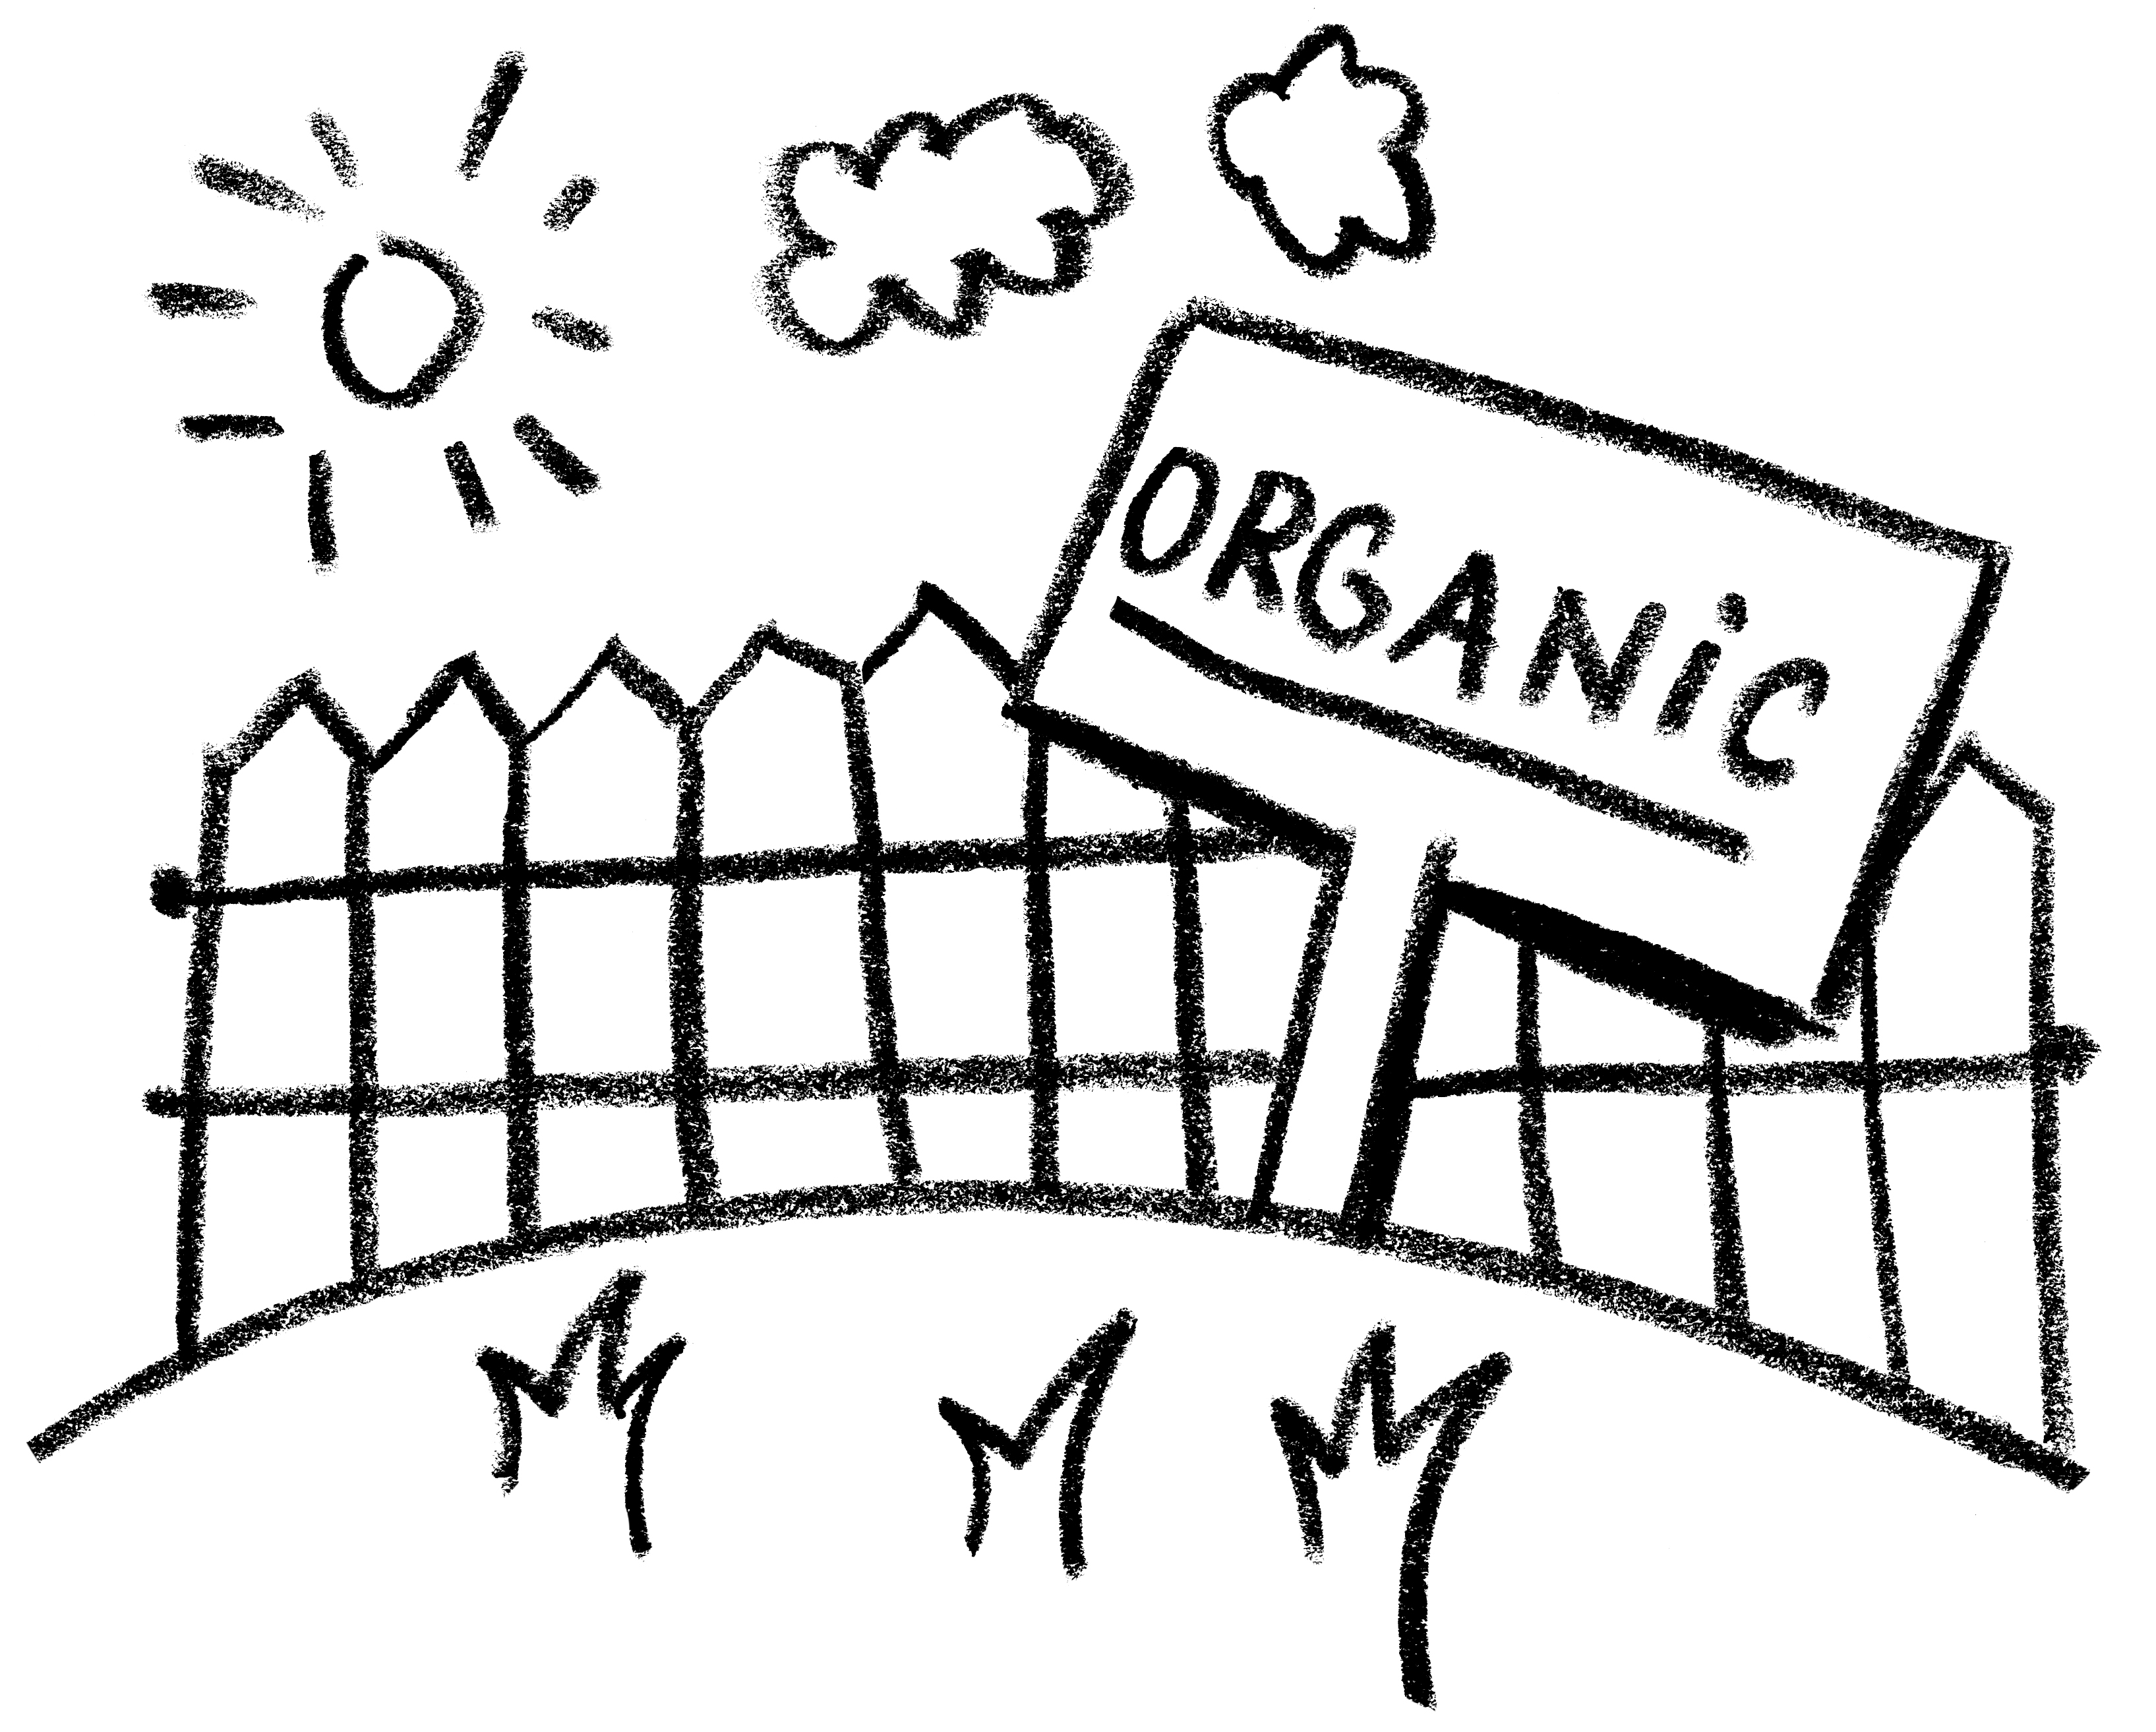 2008 – All our land, from the farms to our gardens – was now certified organic.